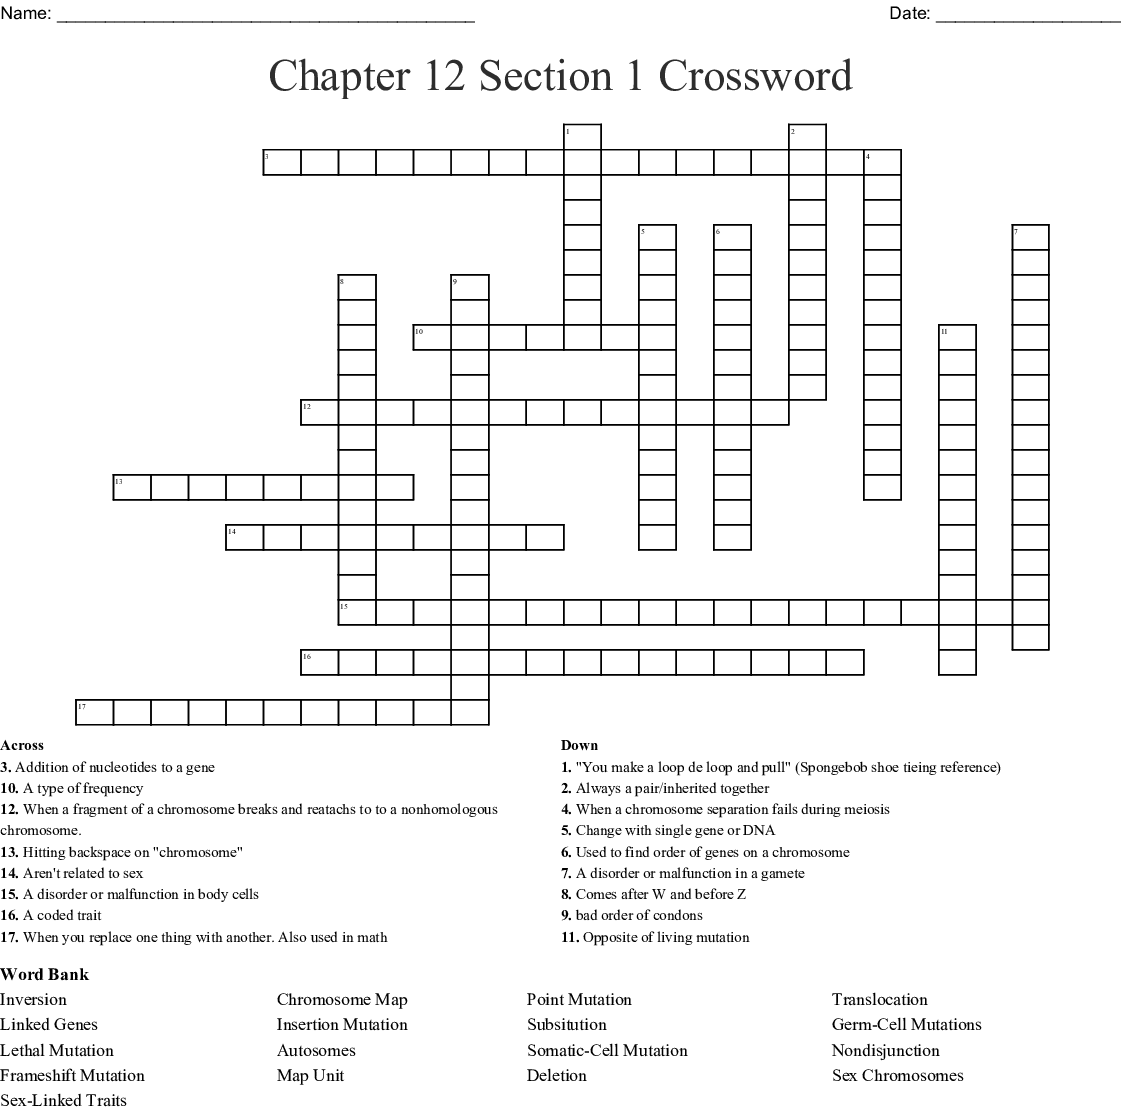 Chapter 12 Section 1 Crossword